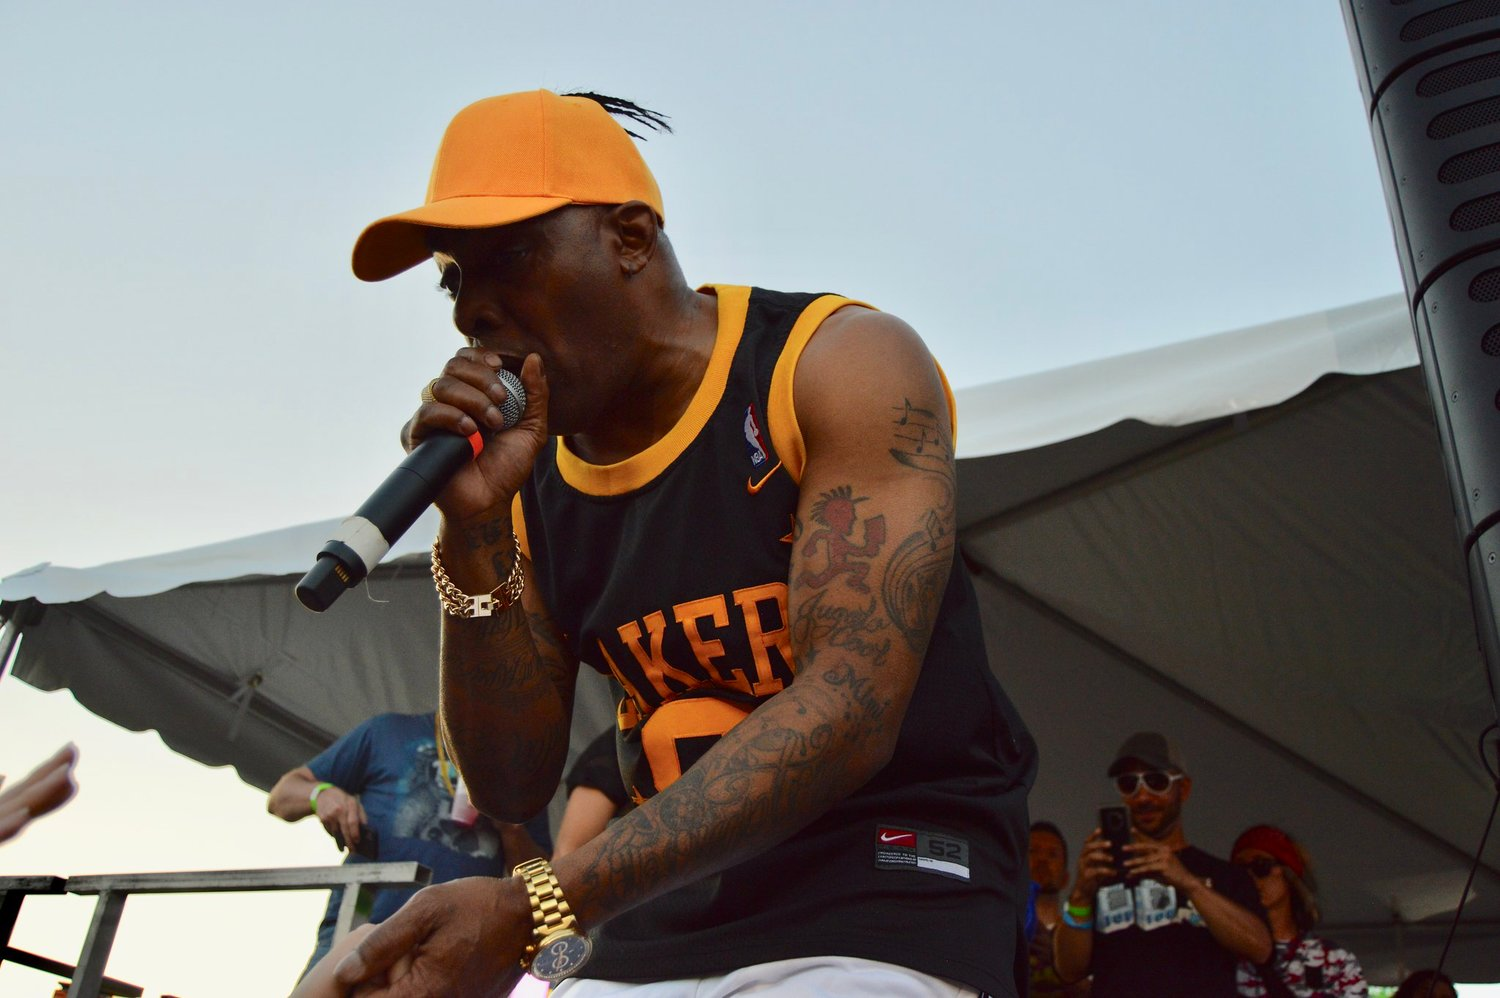 Coolio greeting fans during his performance Friday.